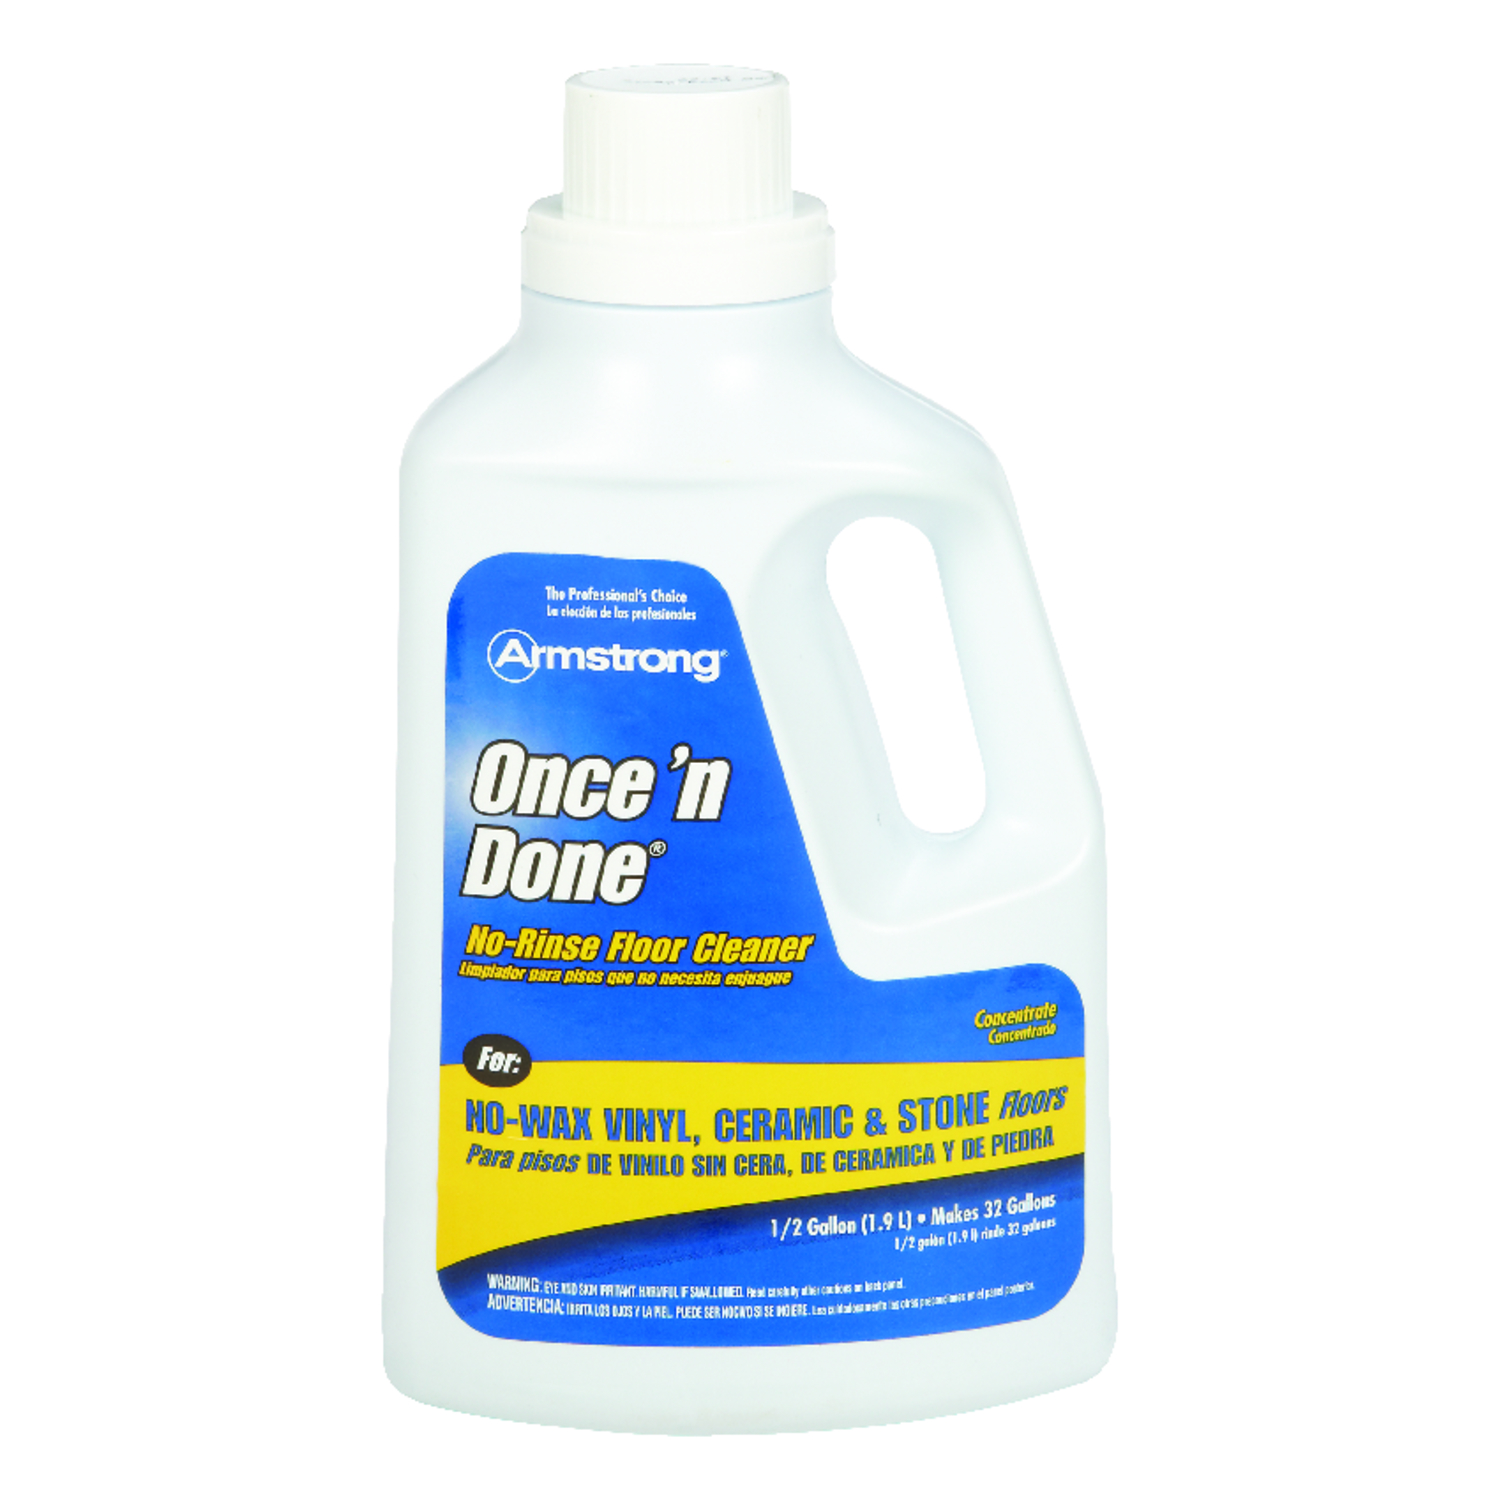 armstrong once n done citrus scent floor cleaner liquid 64 oz